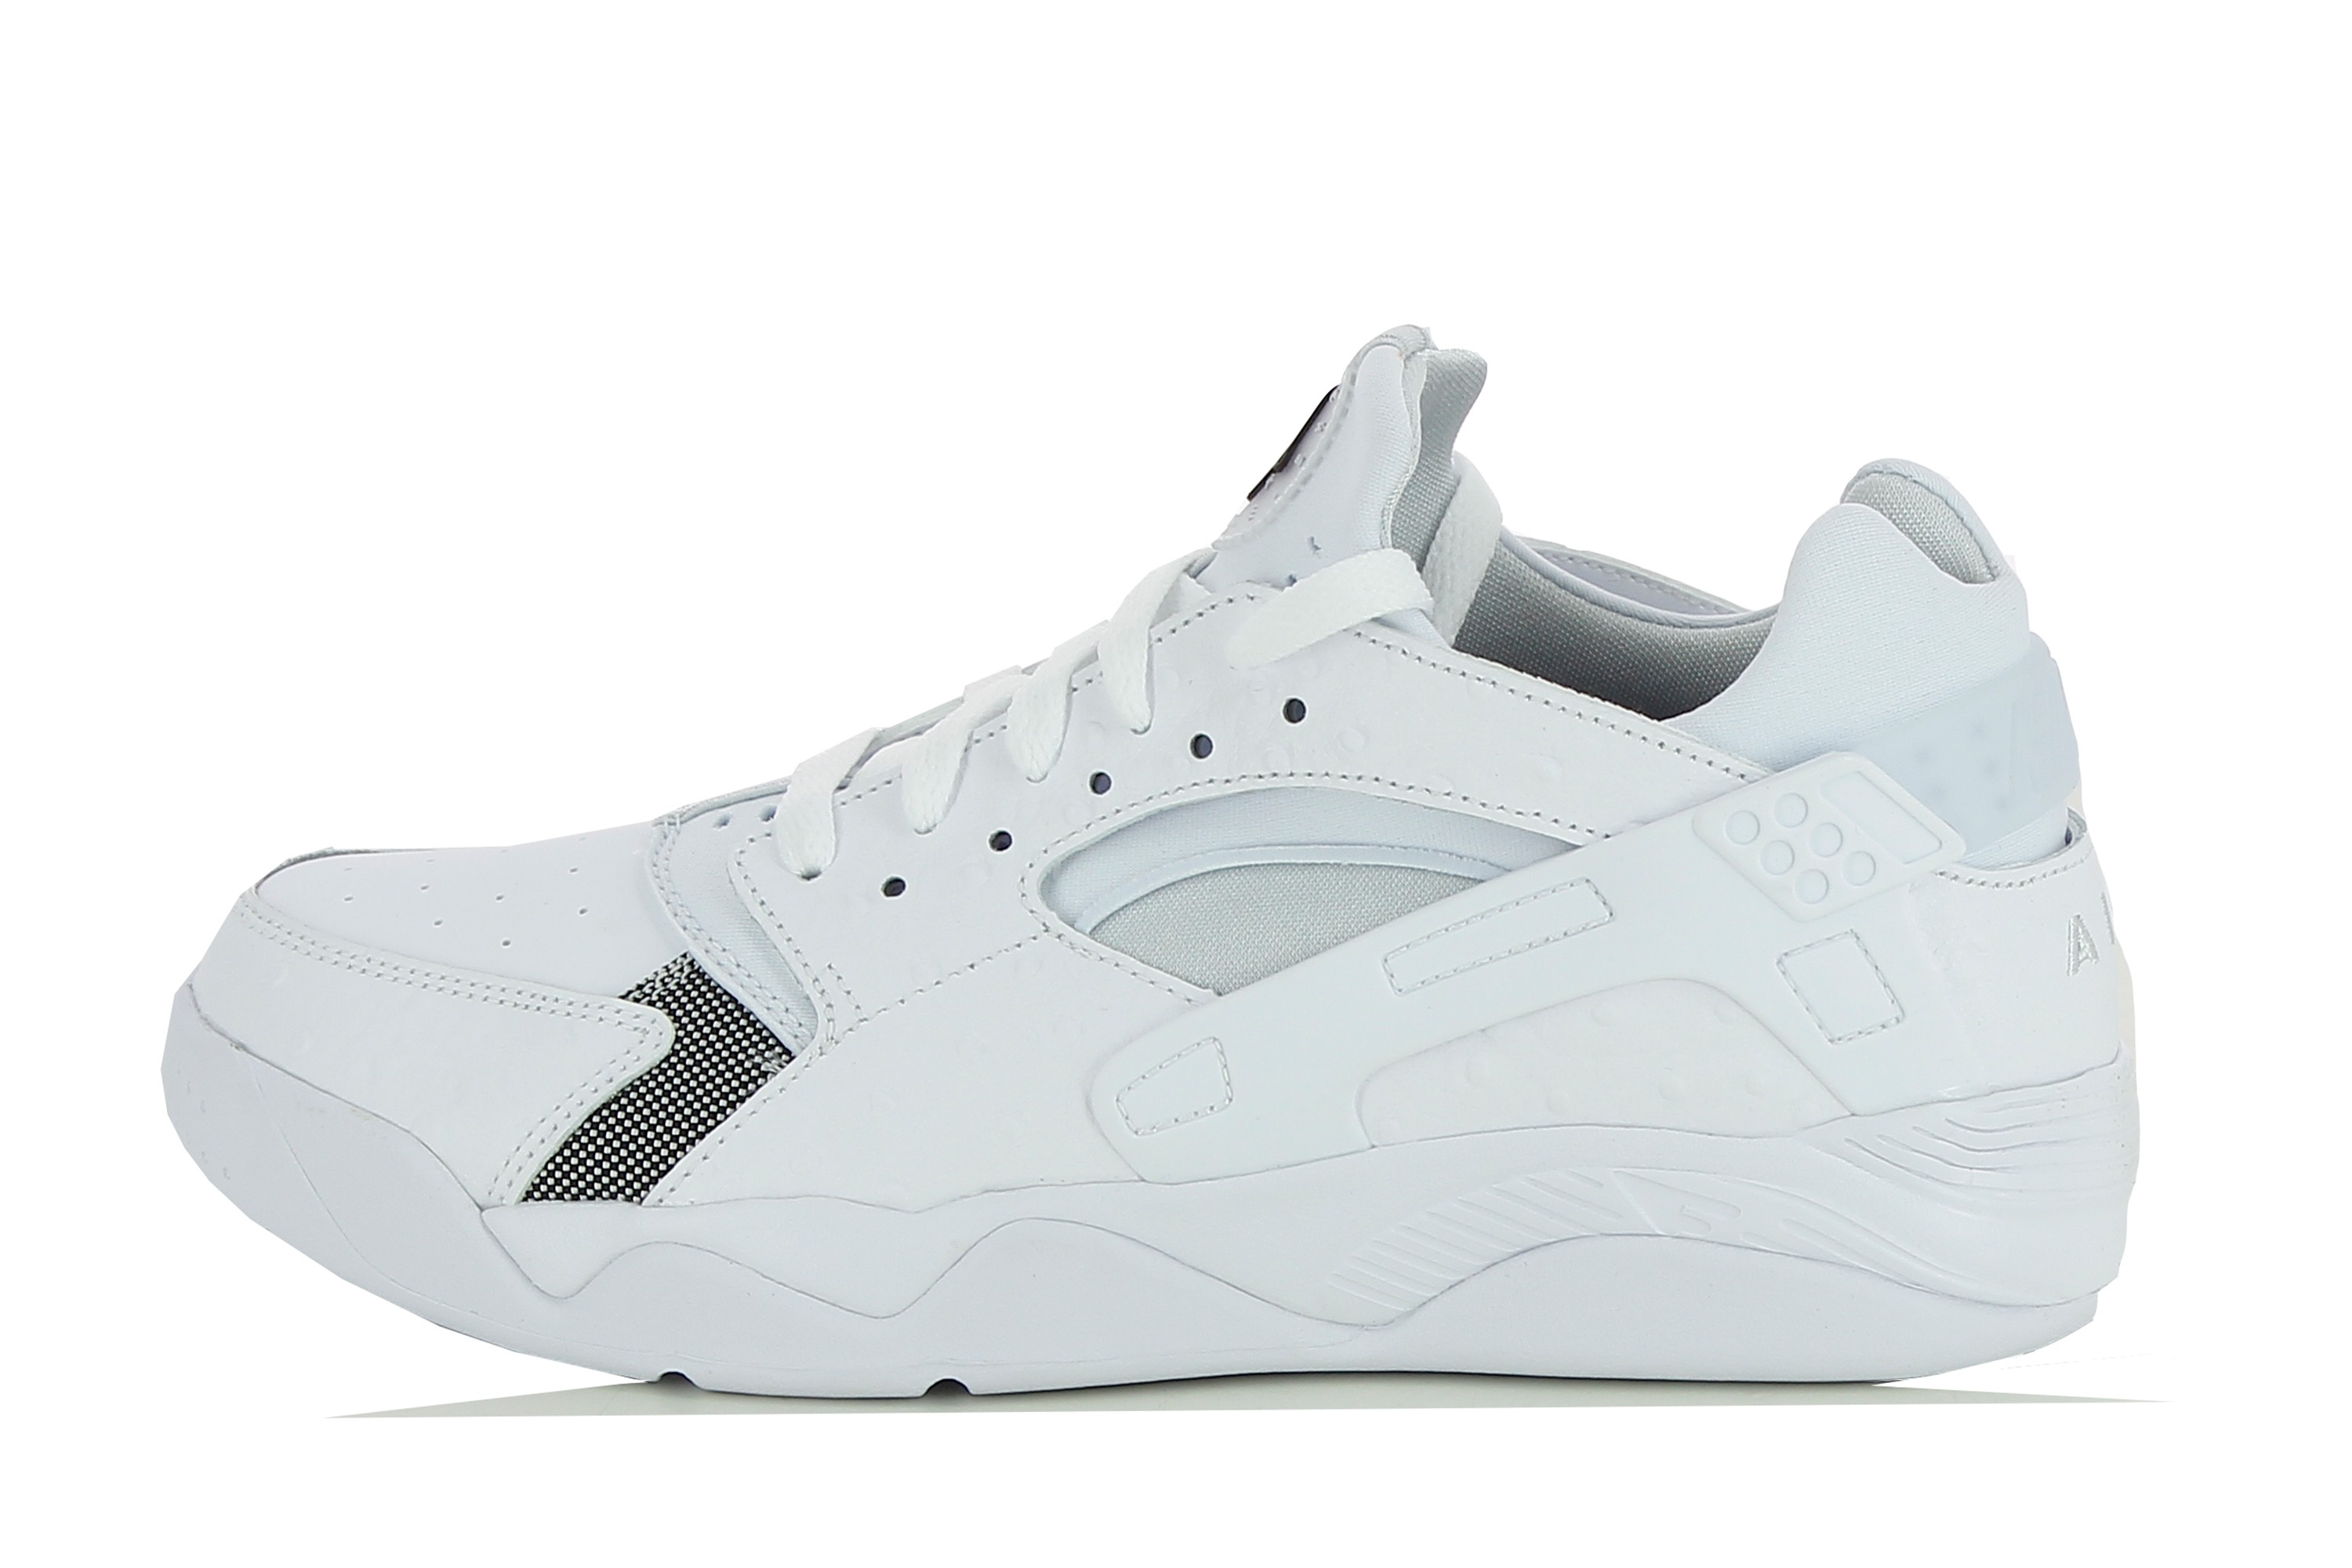 Basket Nike Air Flight Huarache Low Ref. 819847 100